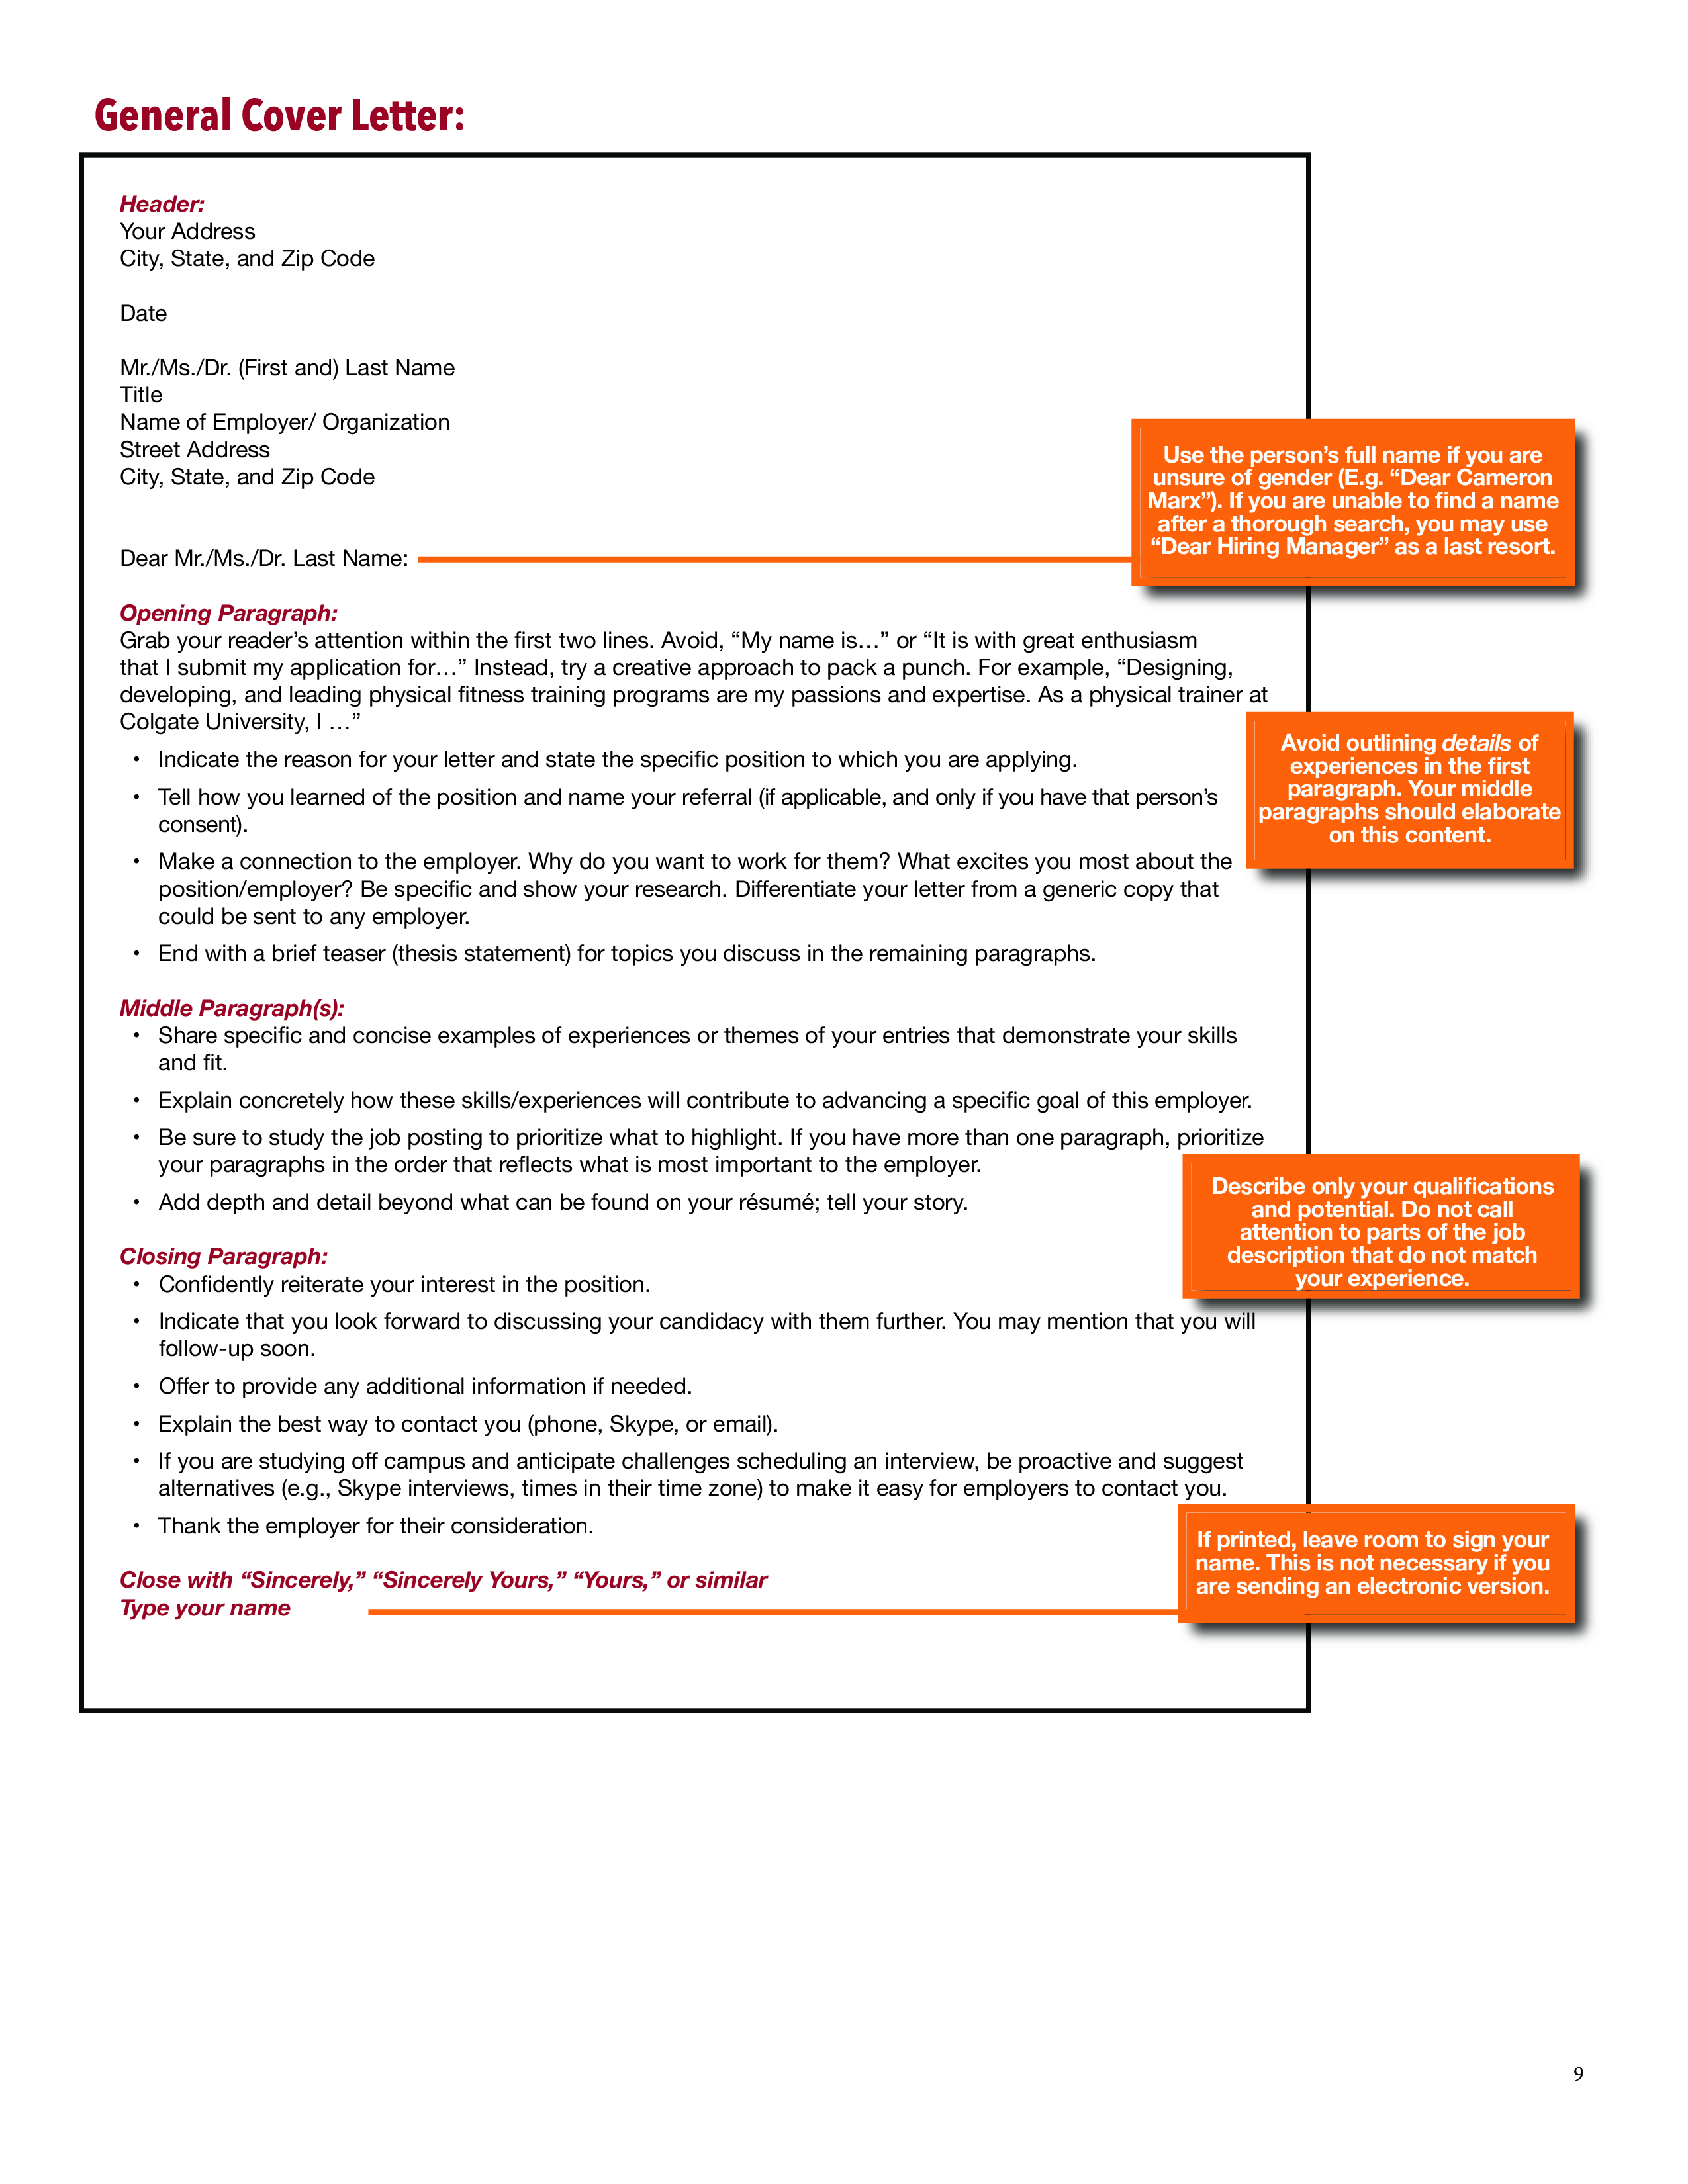 Kostenloses CV and Application Cover Letter templates